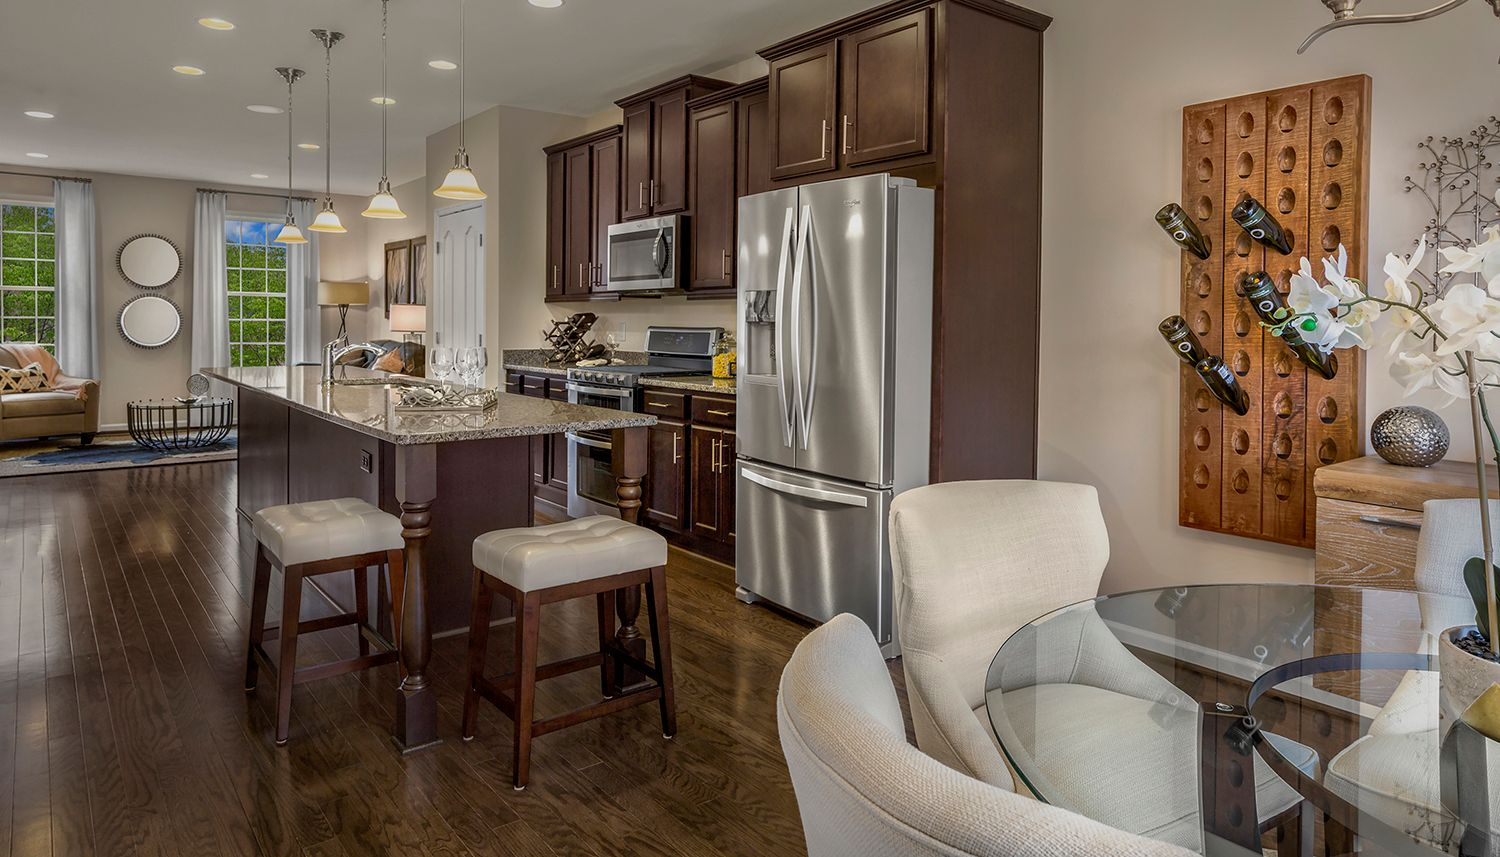 Kitchen featured in the Alden ll By Dan Ryan Builders in Washington, MD